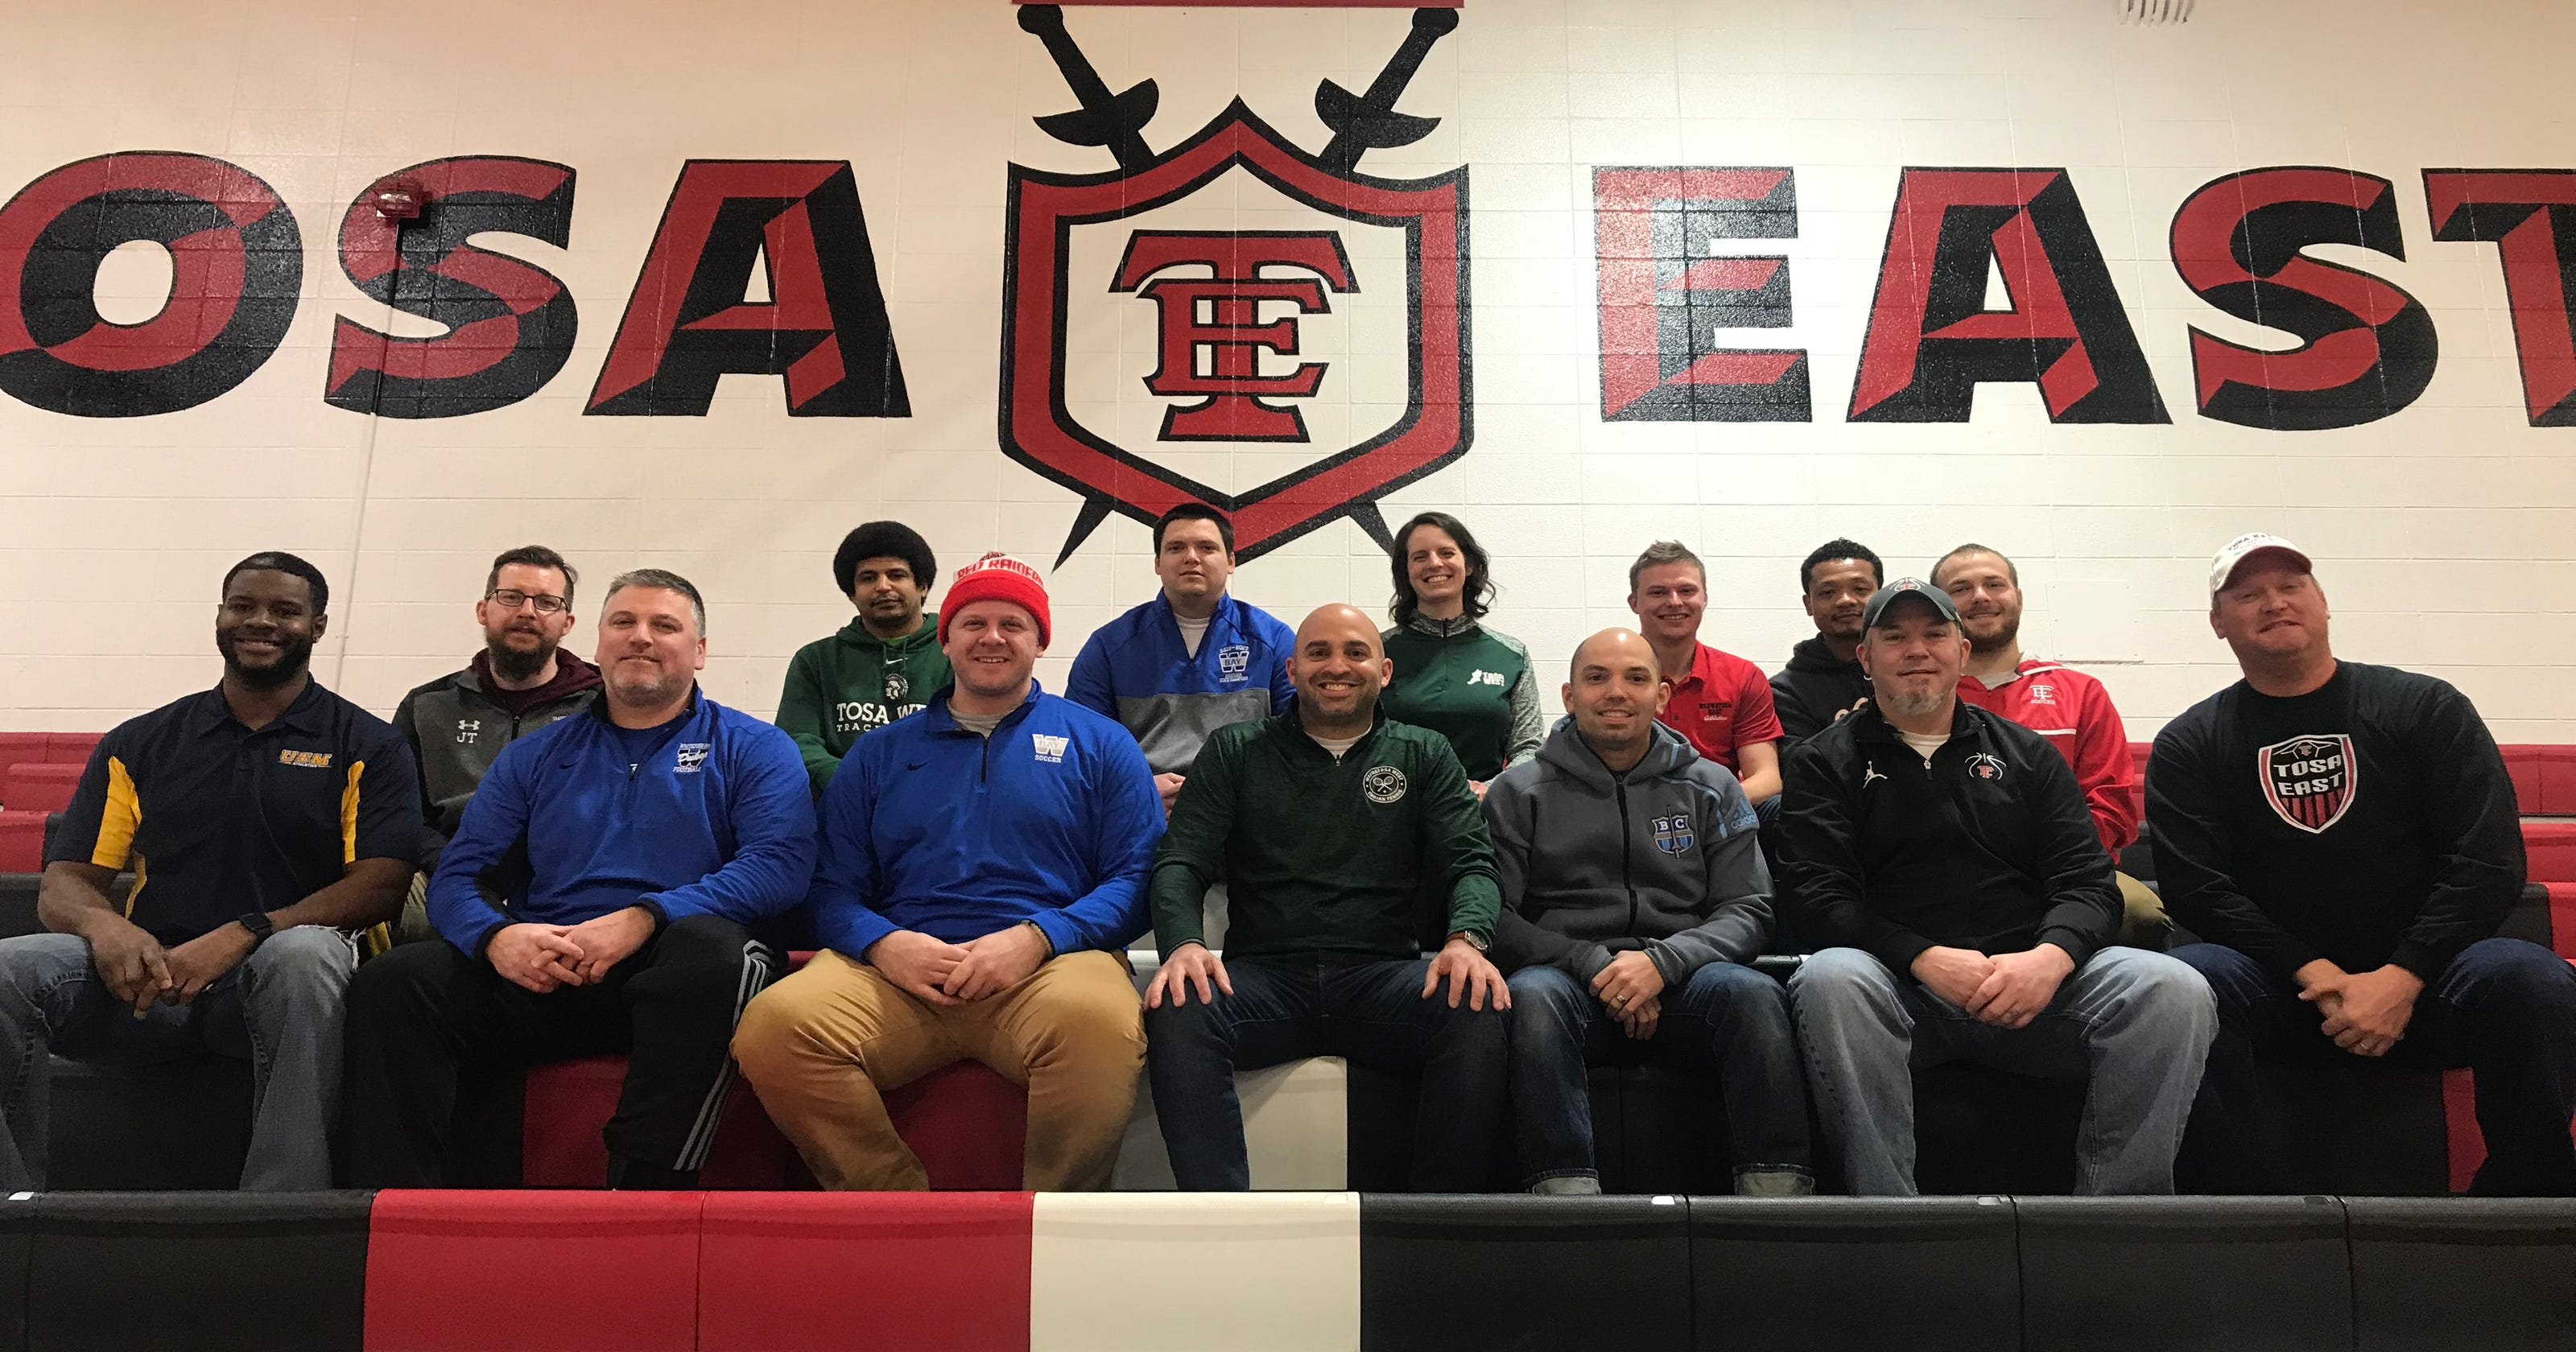 e846f50e1e9a Inordinate number of Wauwatosa East alumni have returned to school as  high-school coaches